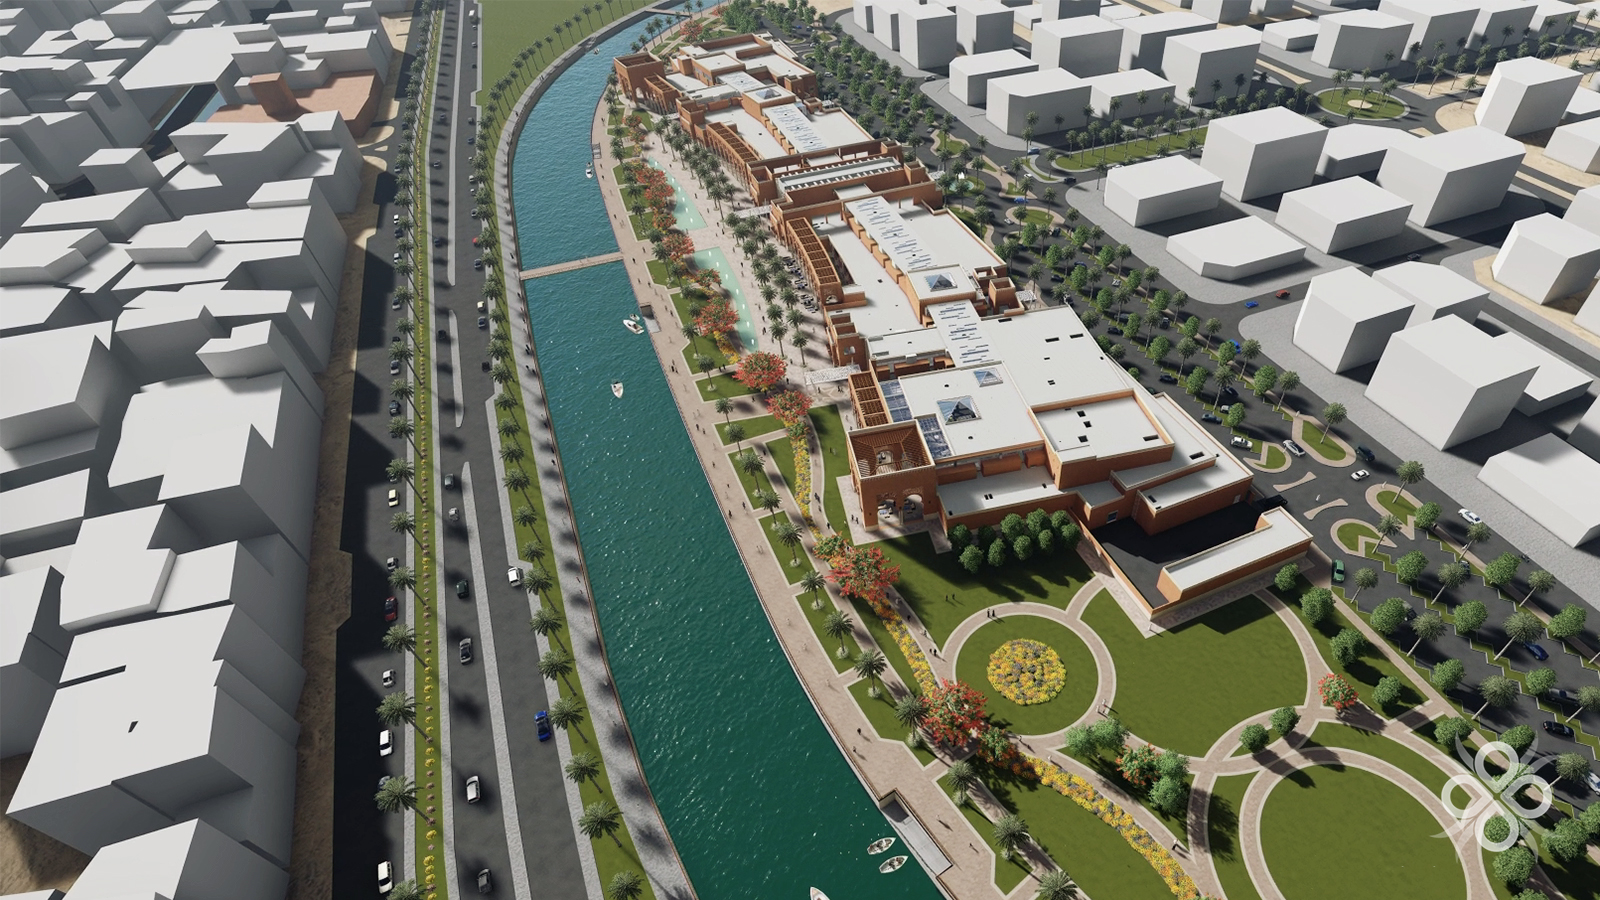 Dibba Al-Hisn Retail Development